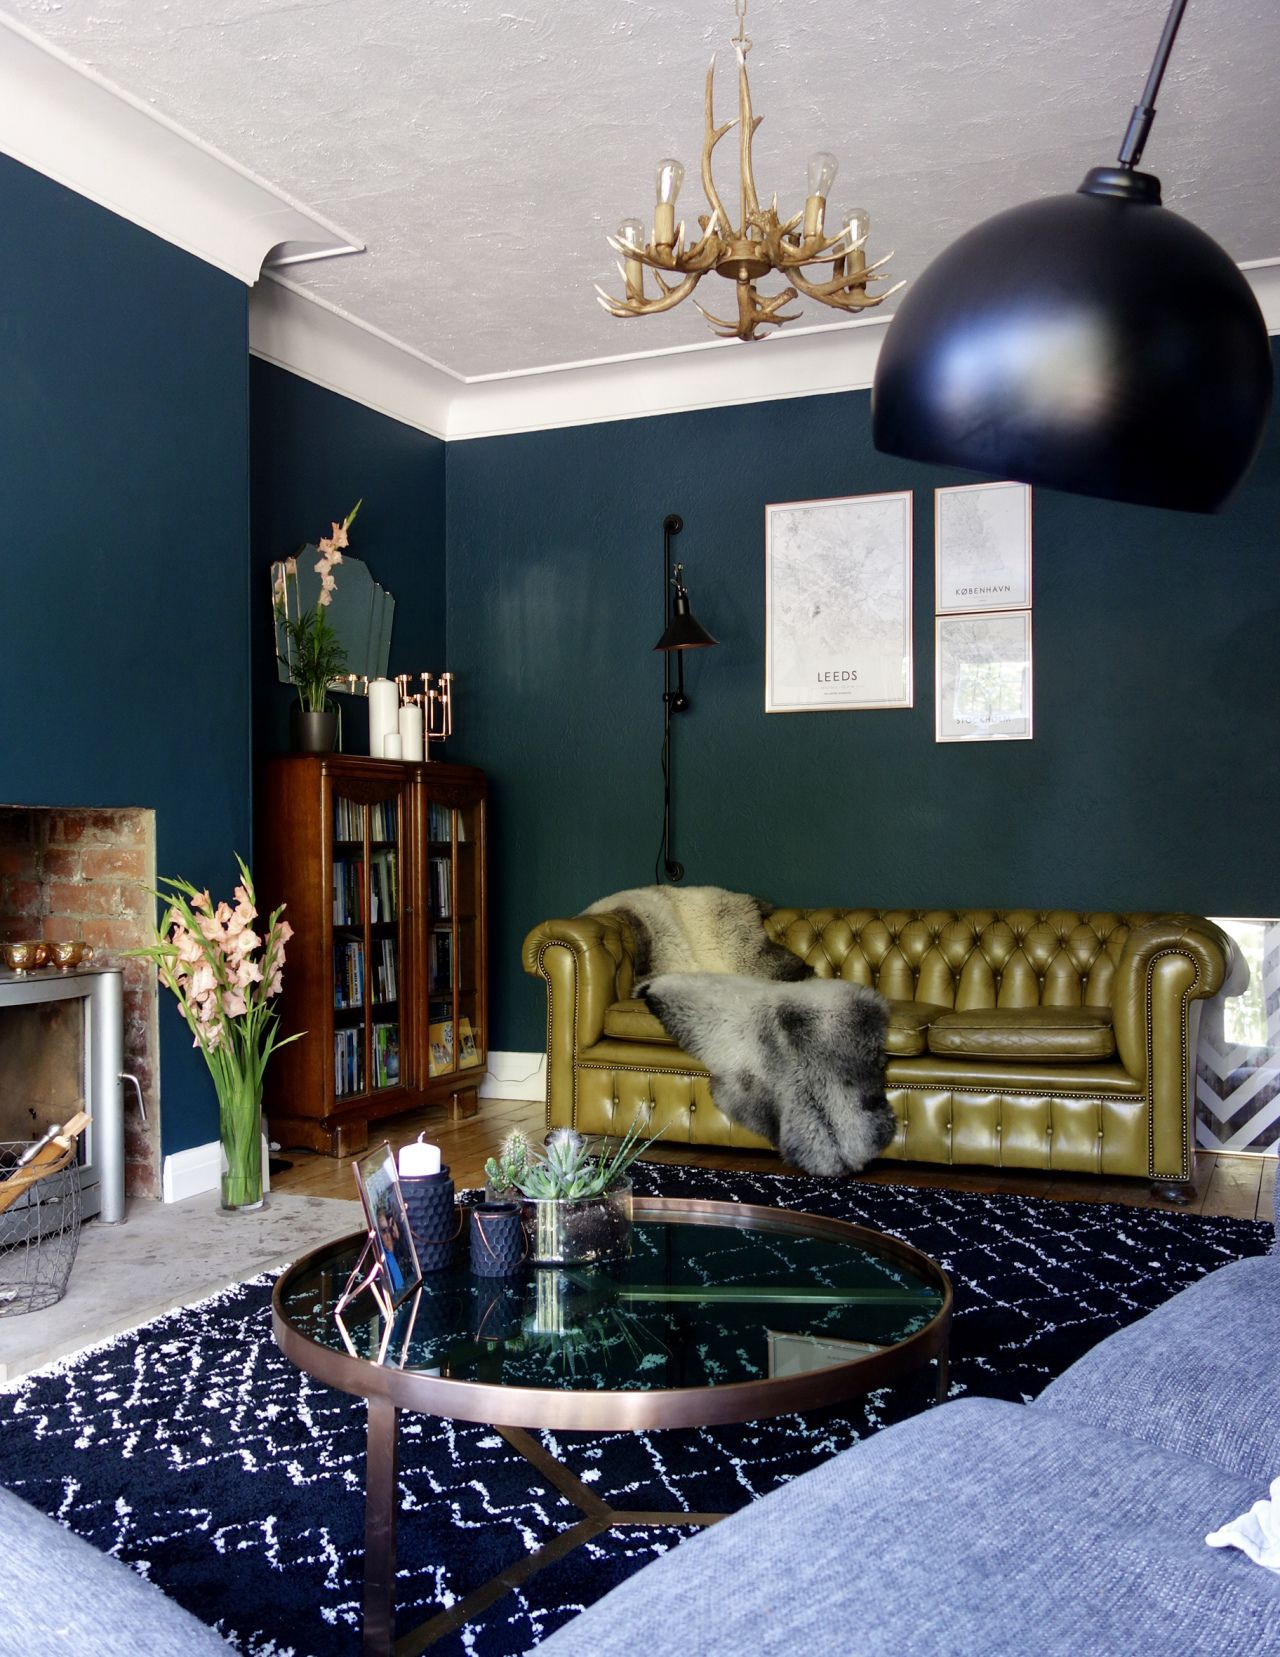 How To Mix Styles Within Your Home Like A True Interior Designer By James Broad Medium